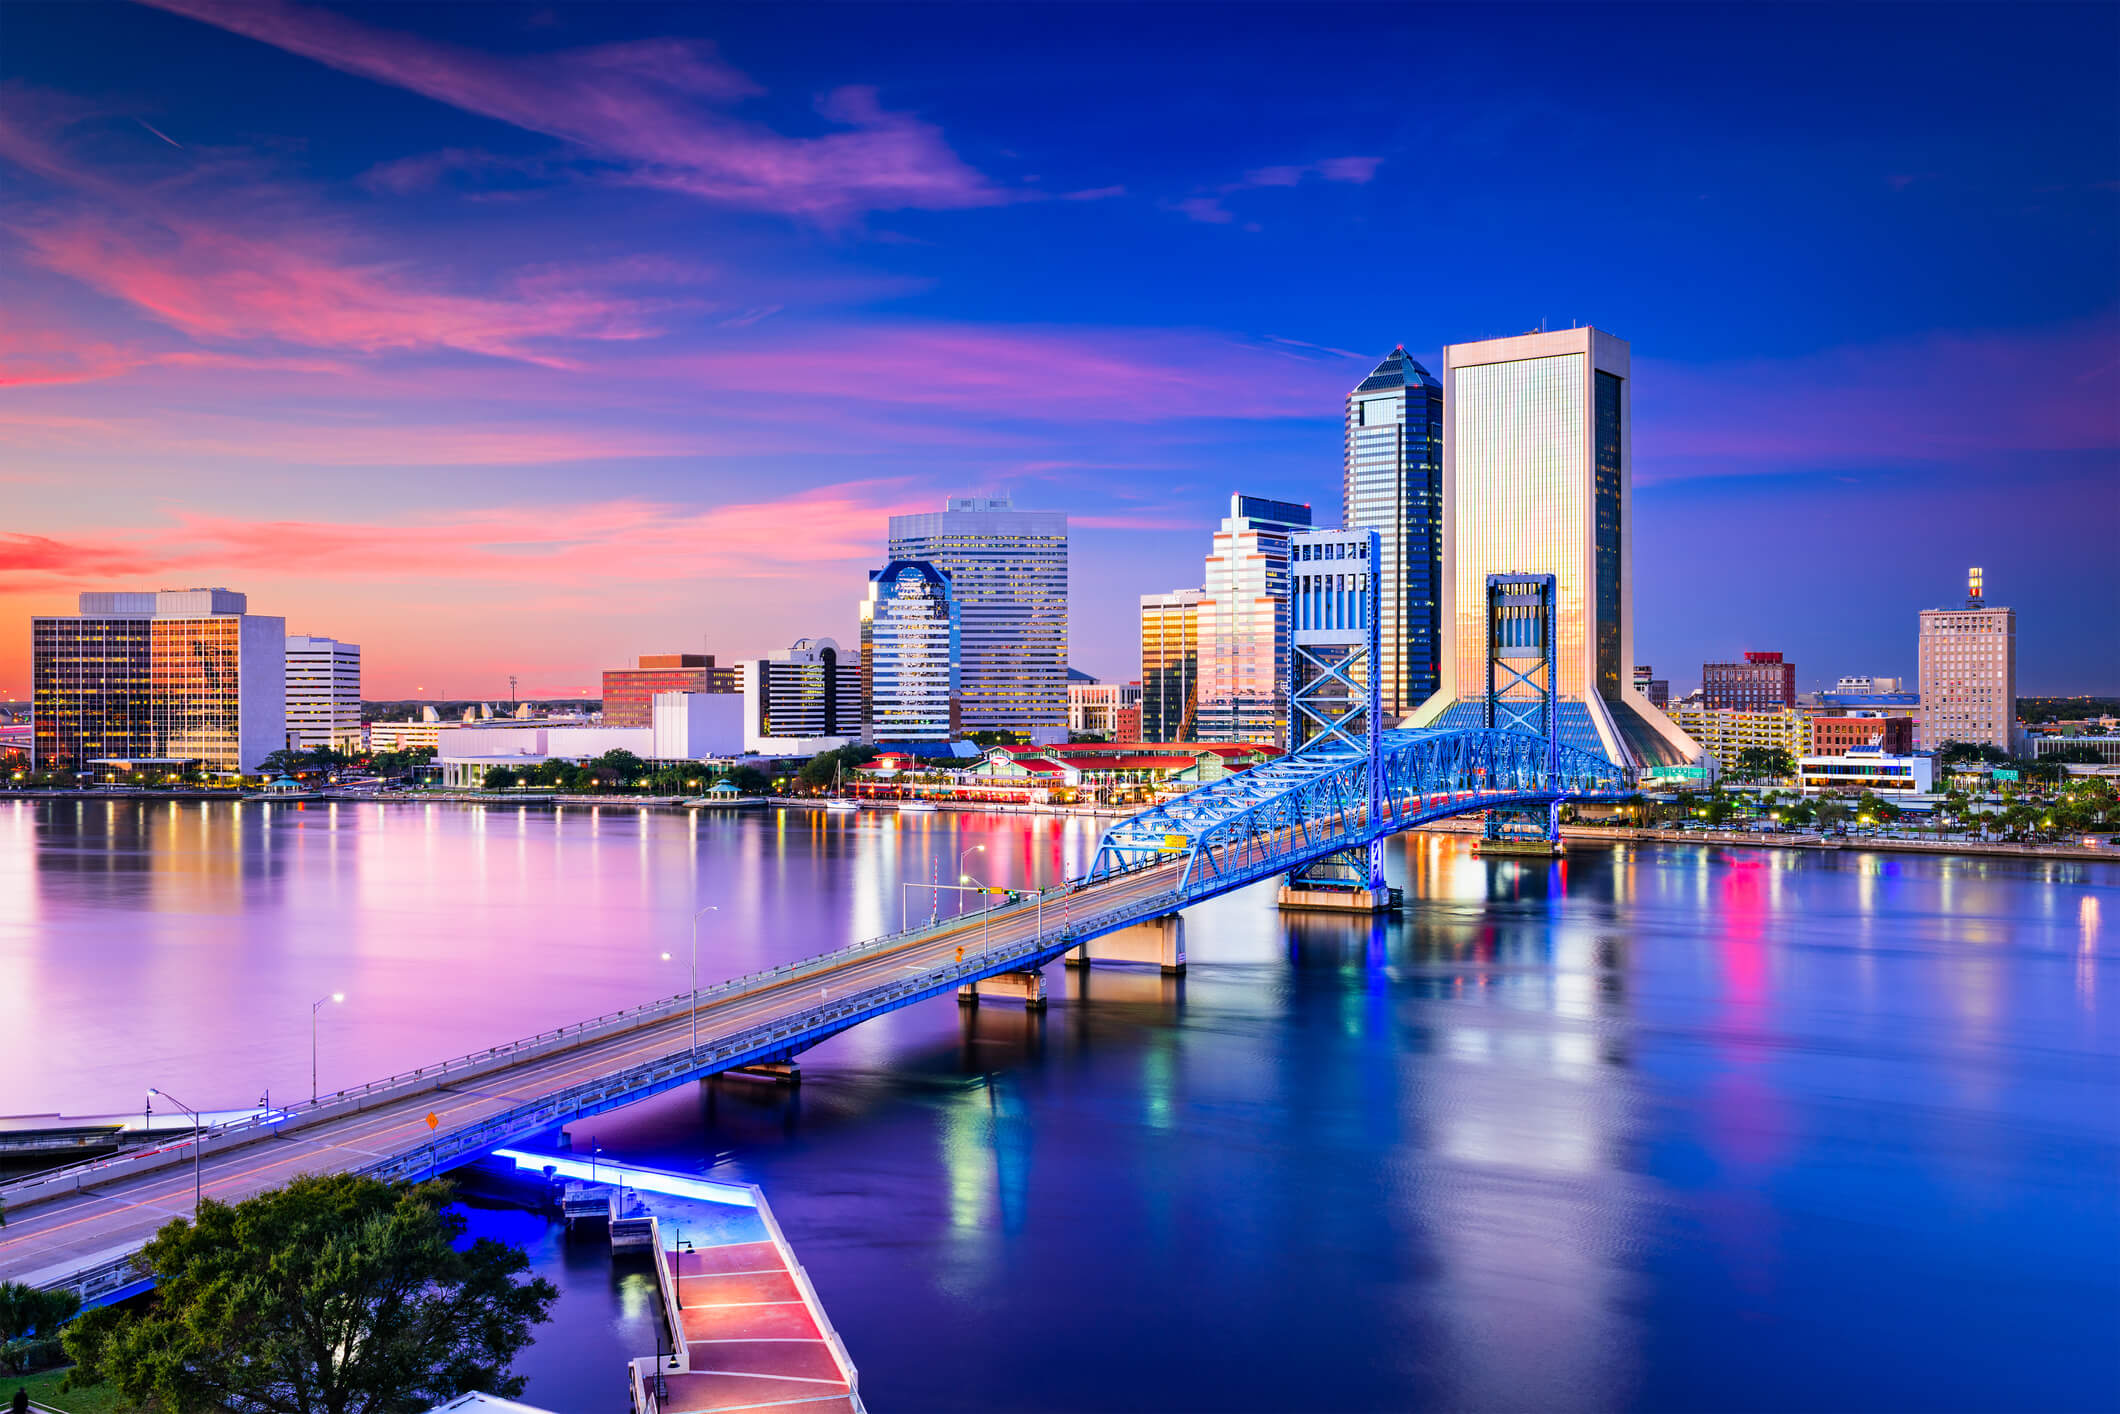 This is a photo of the florida jacksonville skyline over looking atlantic ocean. also one of the locations to get a title loan